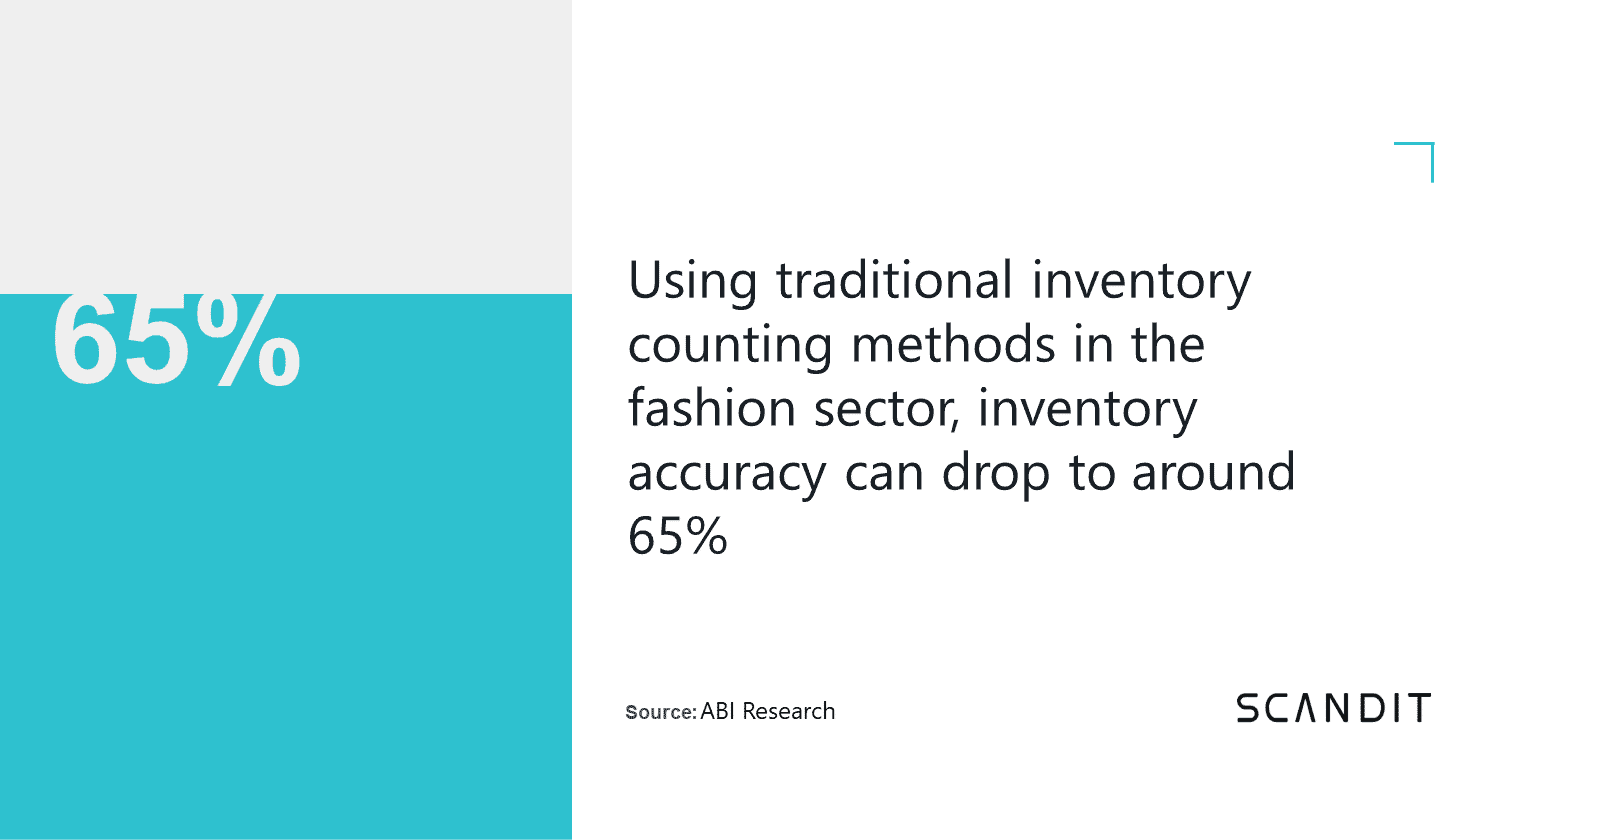 Using traditional inventory counting methods in the fashion sector, inventory accuracy can drop to around 65%